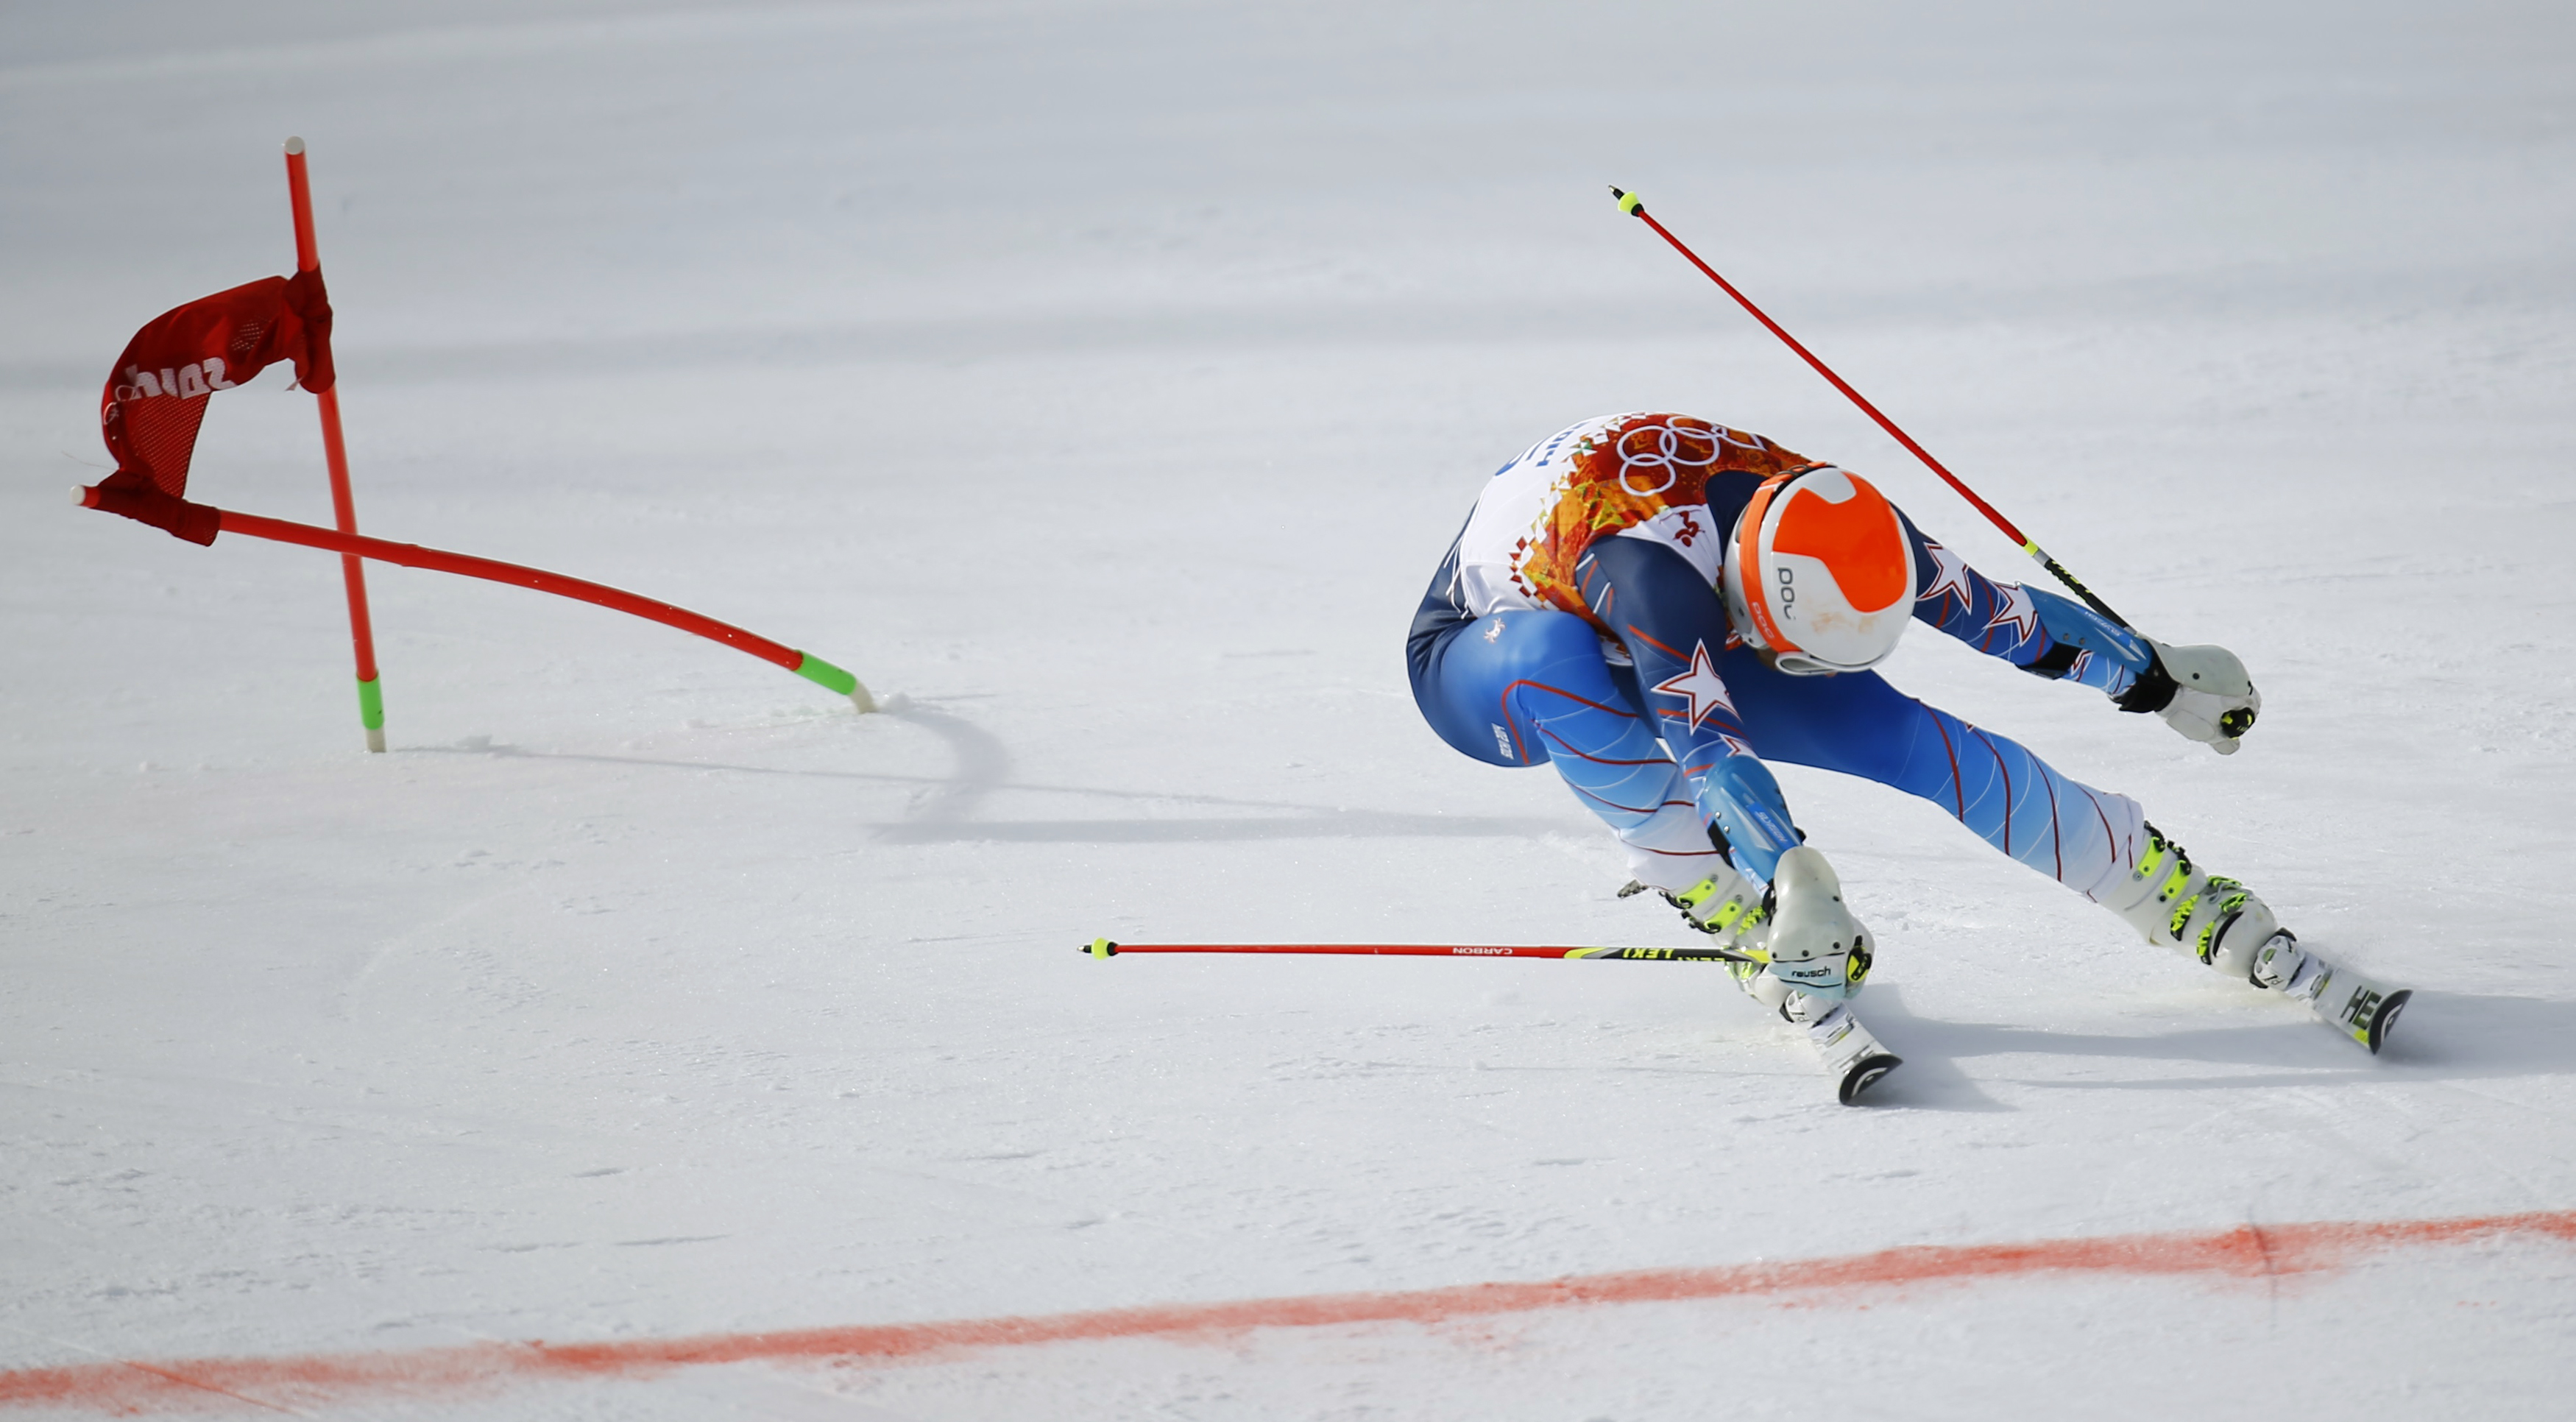 Bode Miller of the U.S. lunges towards the finish line during the first run of the men's alpine skiing giant slalom event.